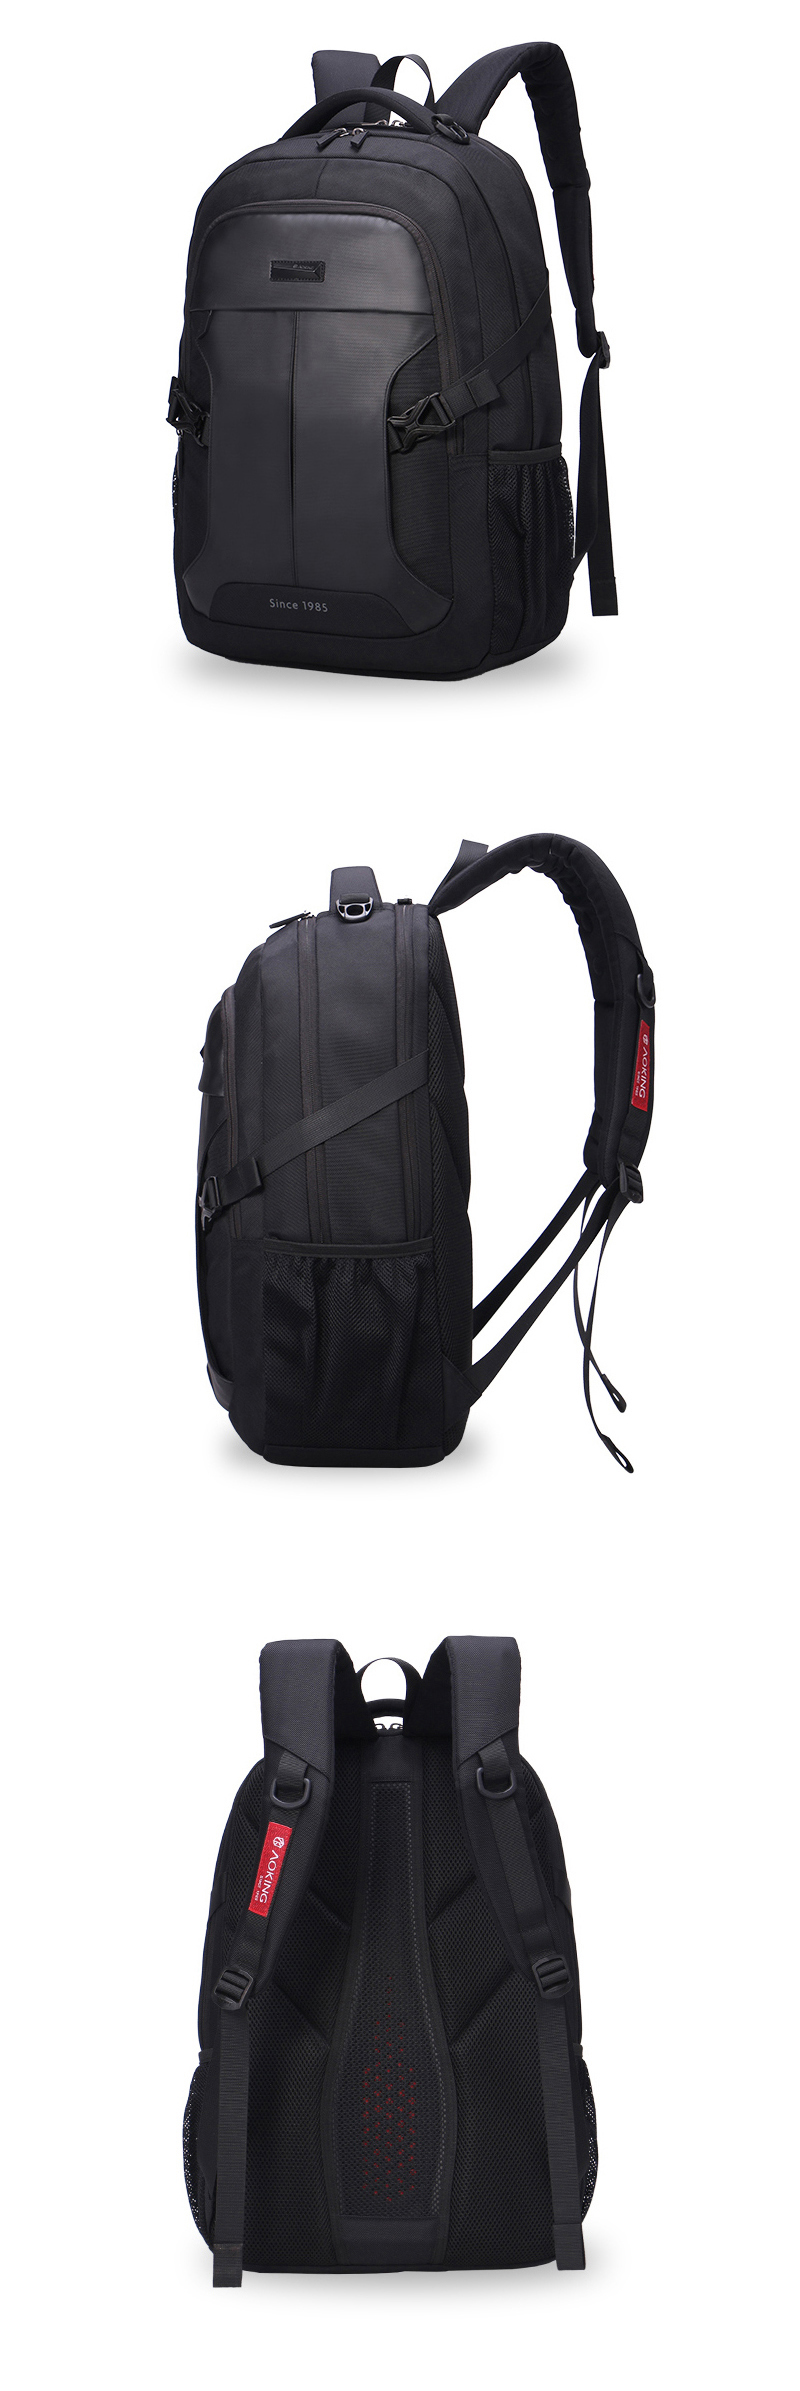 Aoking 2016 backpack New Patent Design Massage Air Cushion Men s Laptop  Backpack Men Large Capacity Comfort 69f985e542